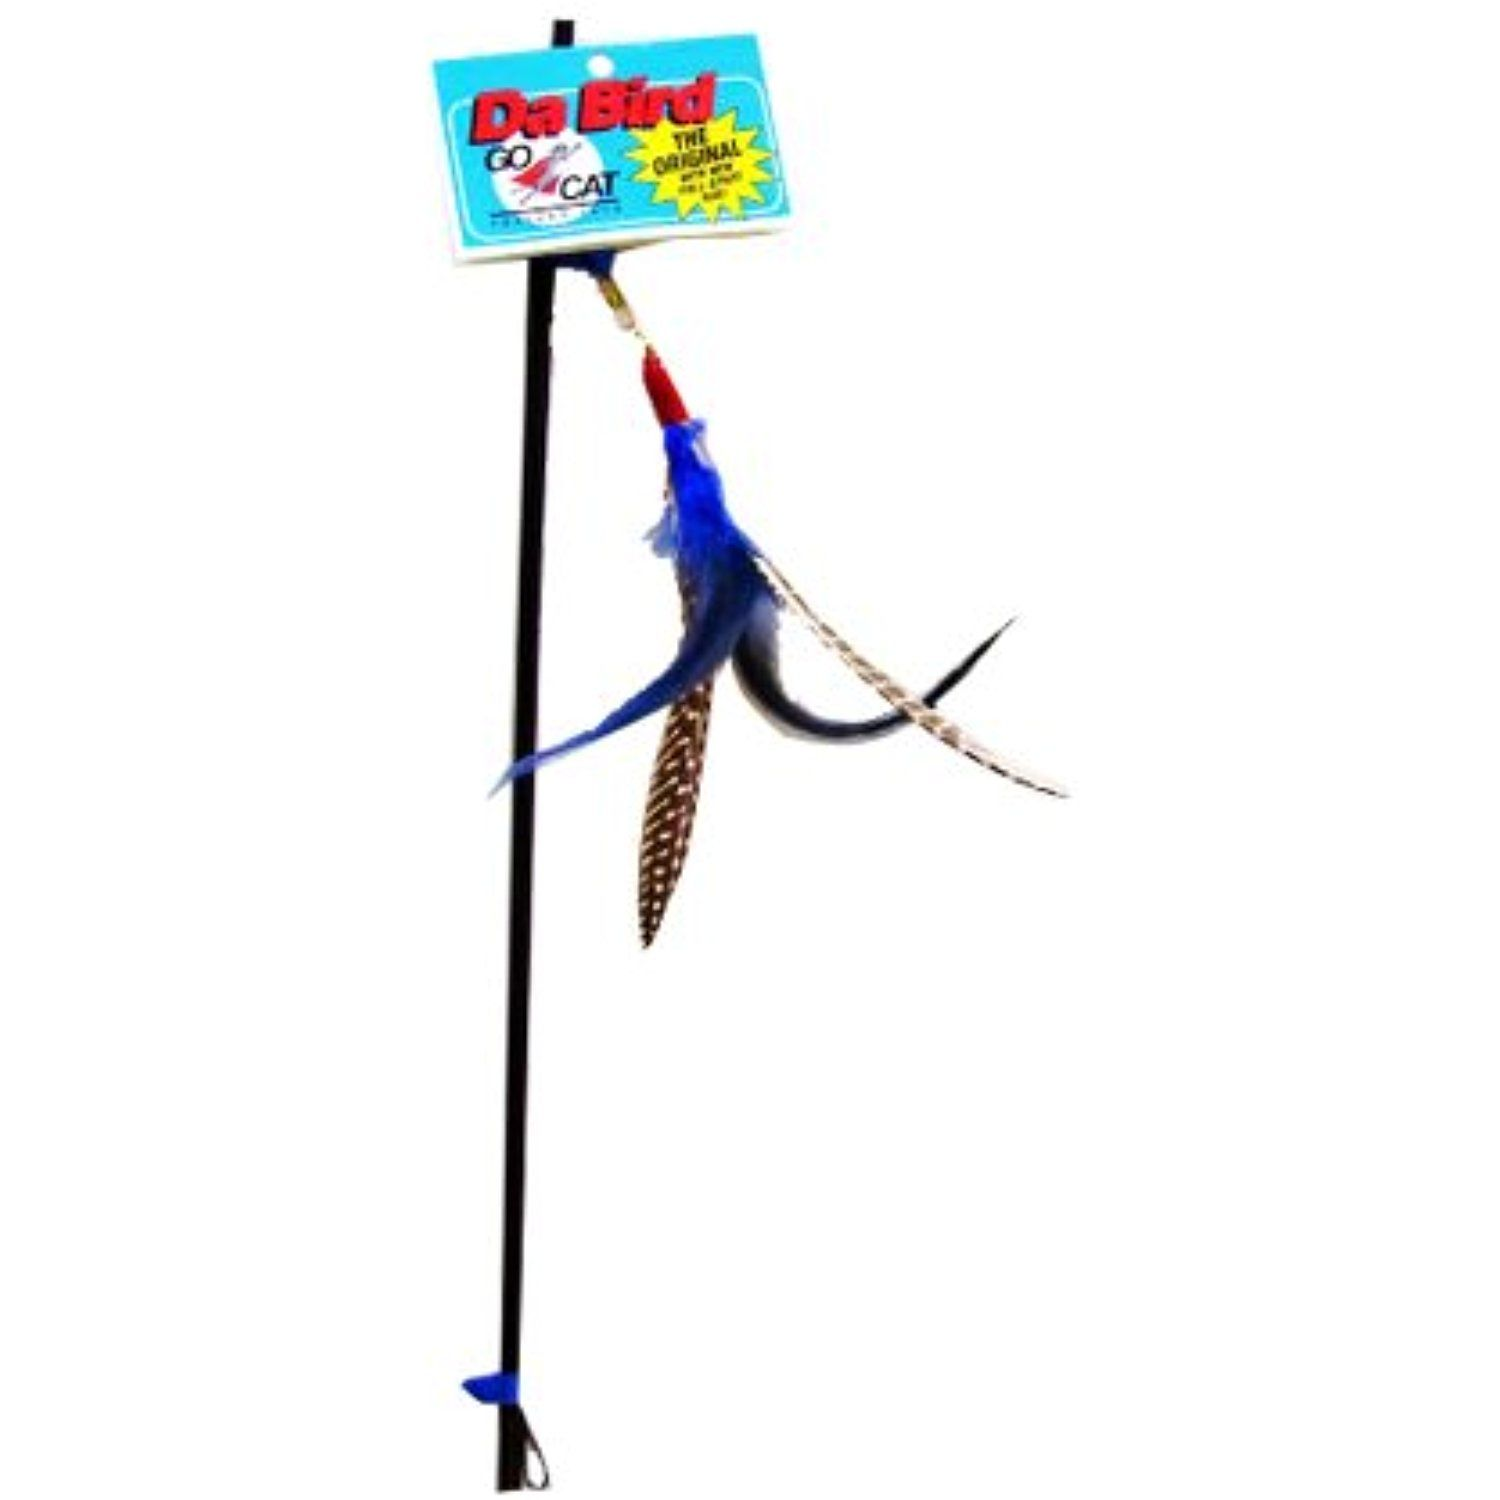 Gocat Da Bird Pull Apart Rod And Bird Cat Feather Toys Assorted Colors You Can Find More Details By Visiting The Image Link With Images Cat Toys Handmade Bird Toys